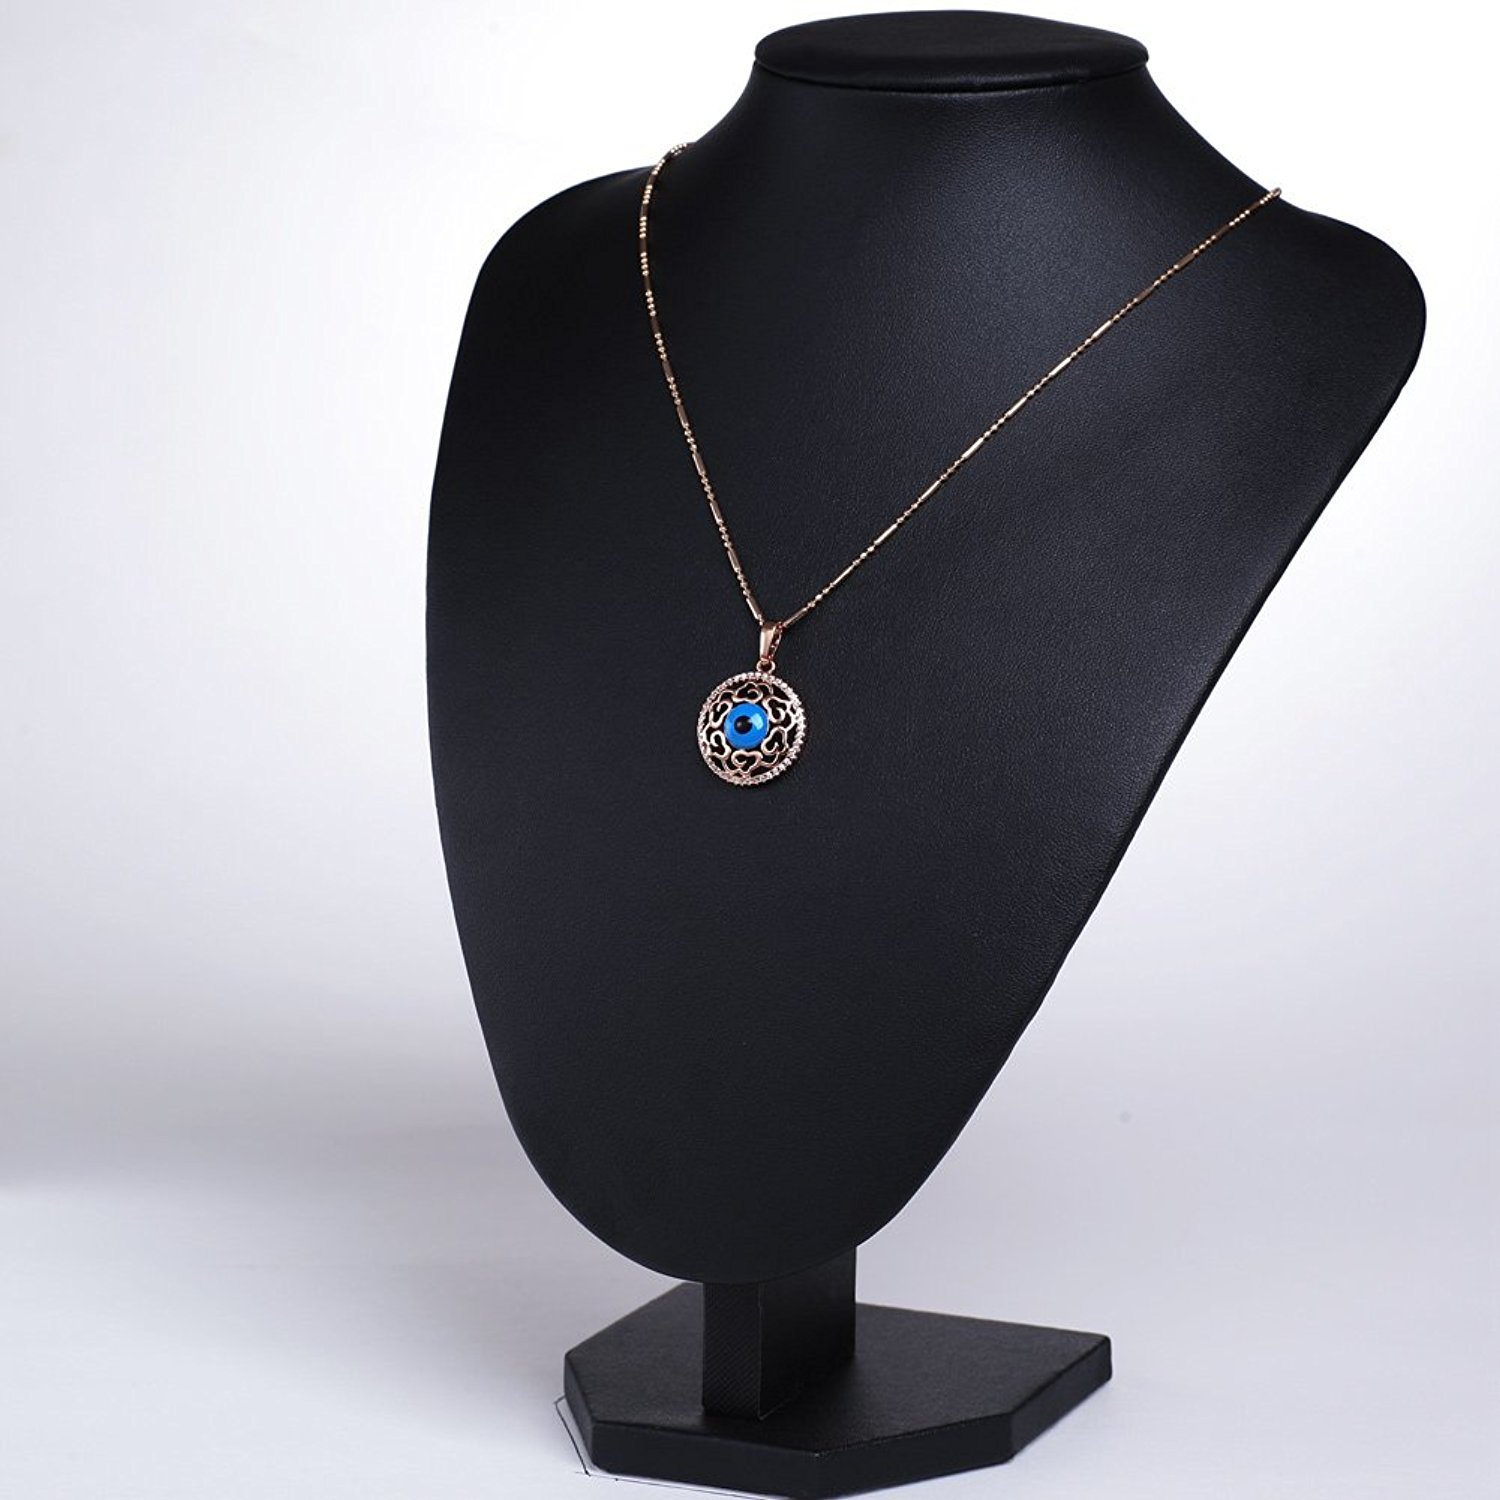 Magical Evil Eye Protection Amulet Medallion Gold-Tone Heart Accents  Sparkling Crystals 18 Inch Necklace from Hughdeal4less